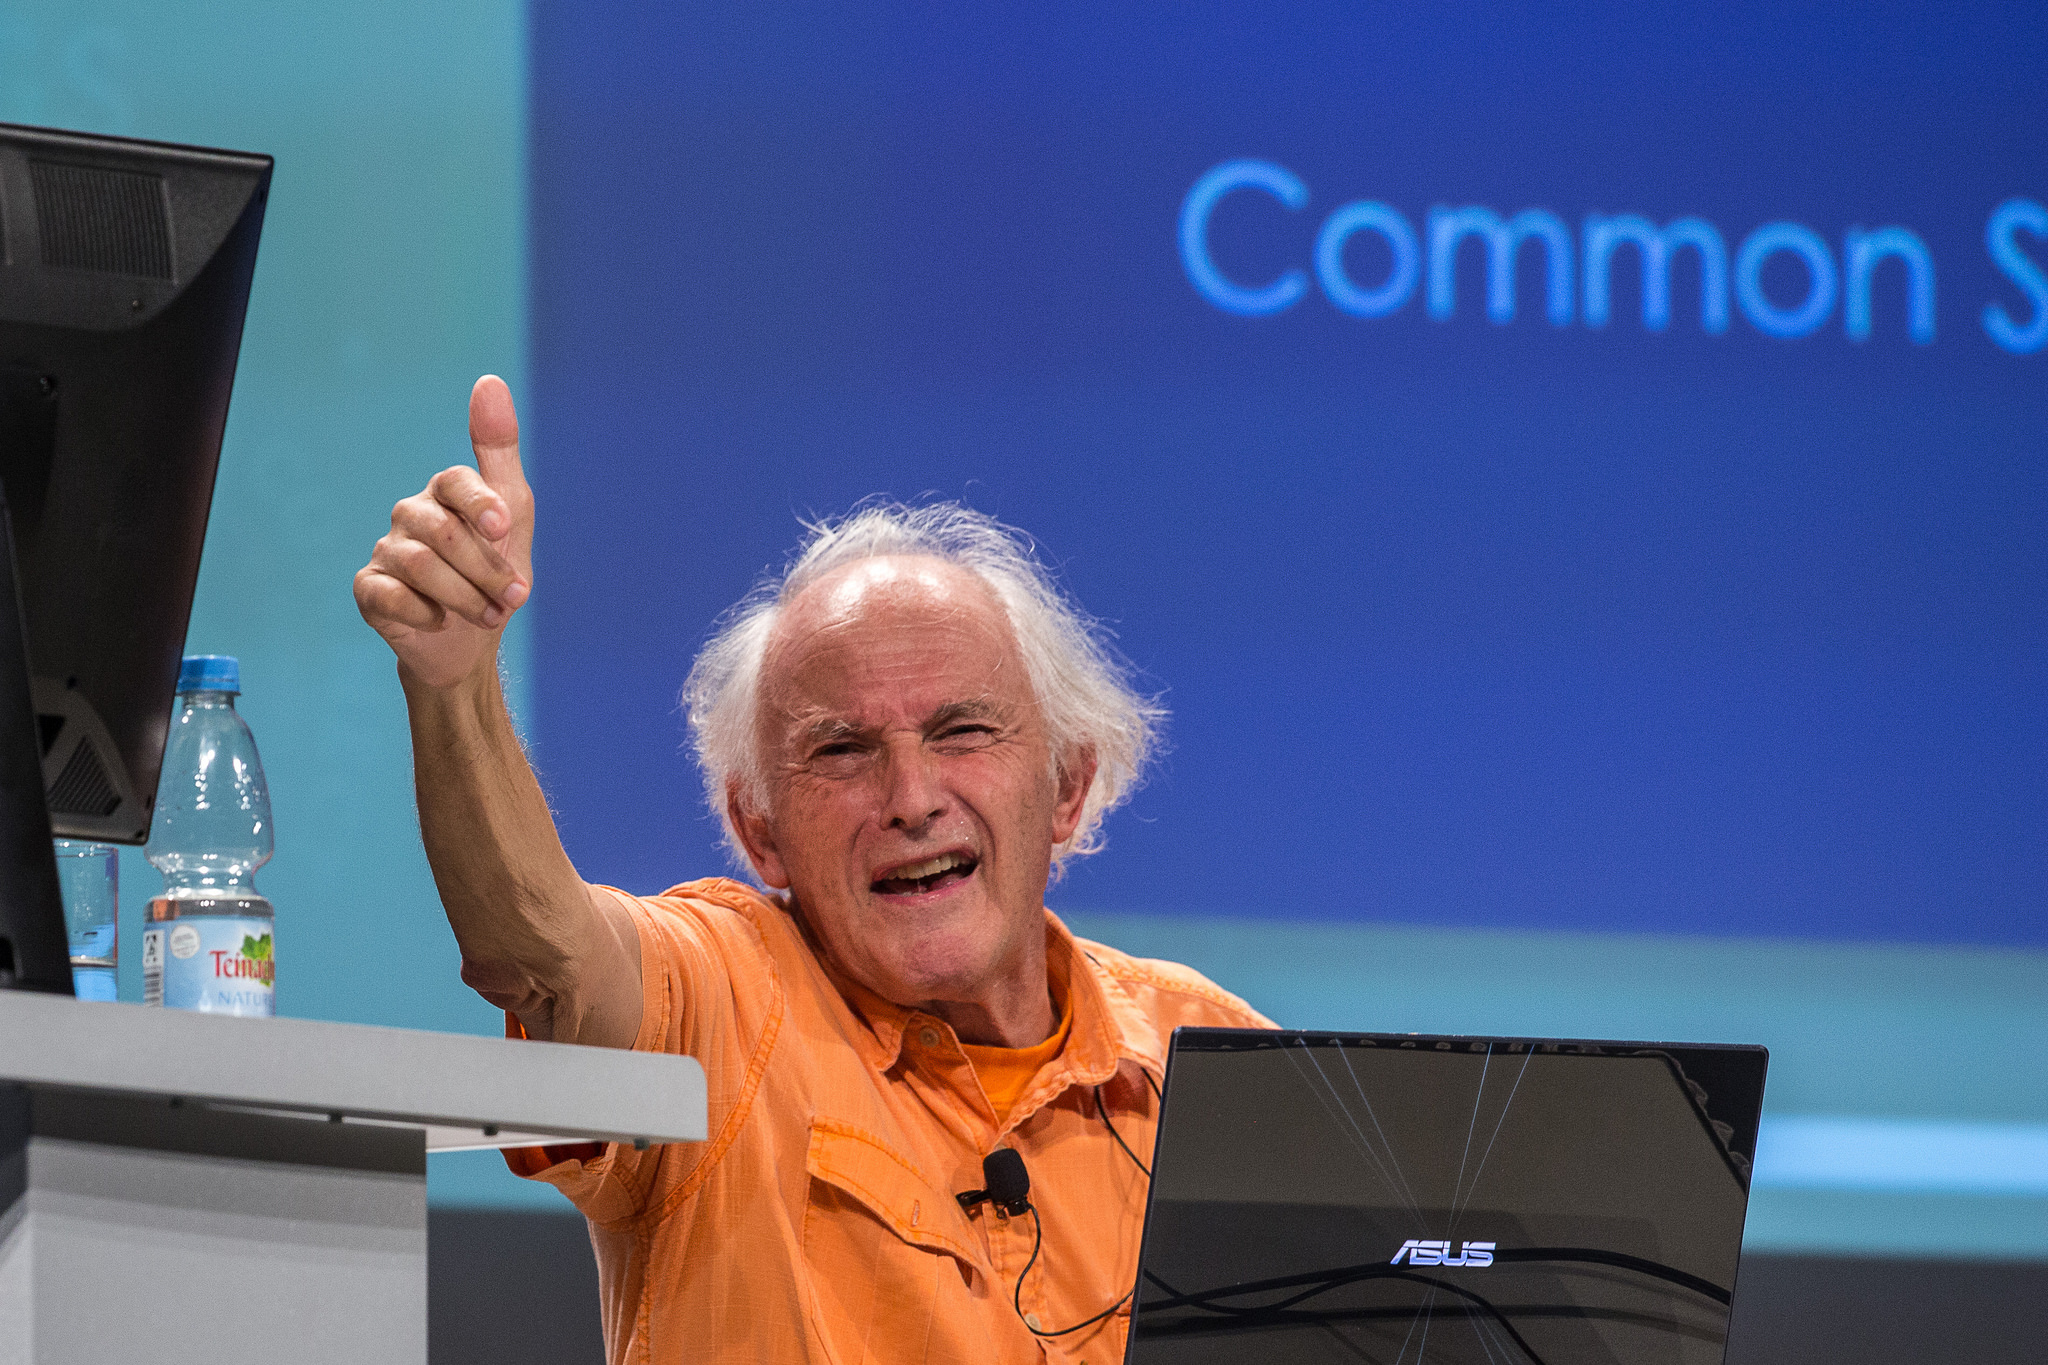 Sir Harold Kroto (Picture/Credit: Christian Flemming/Lindau Nobel Laureate Meetings)